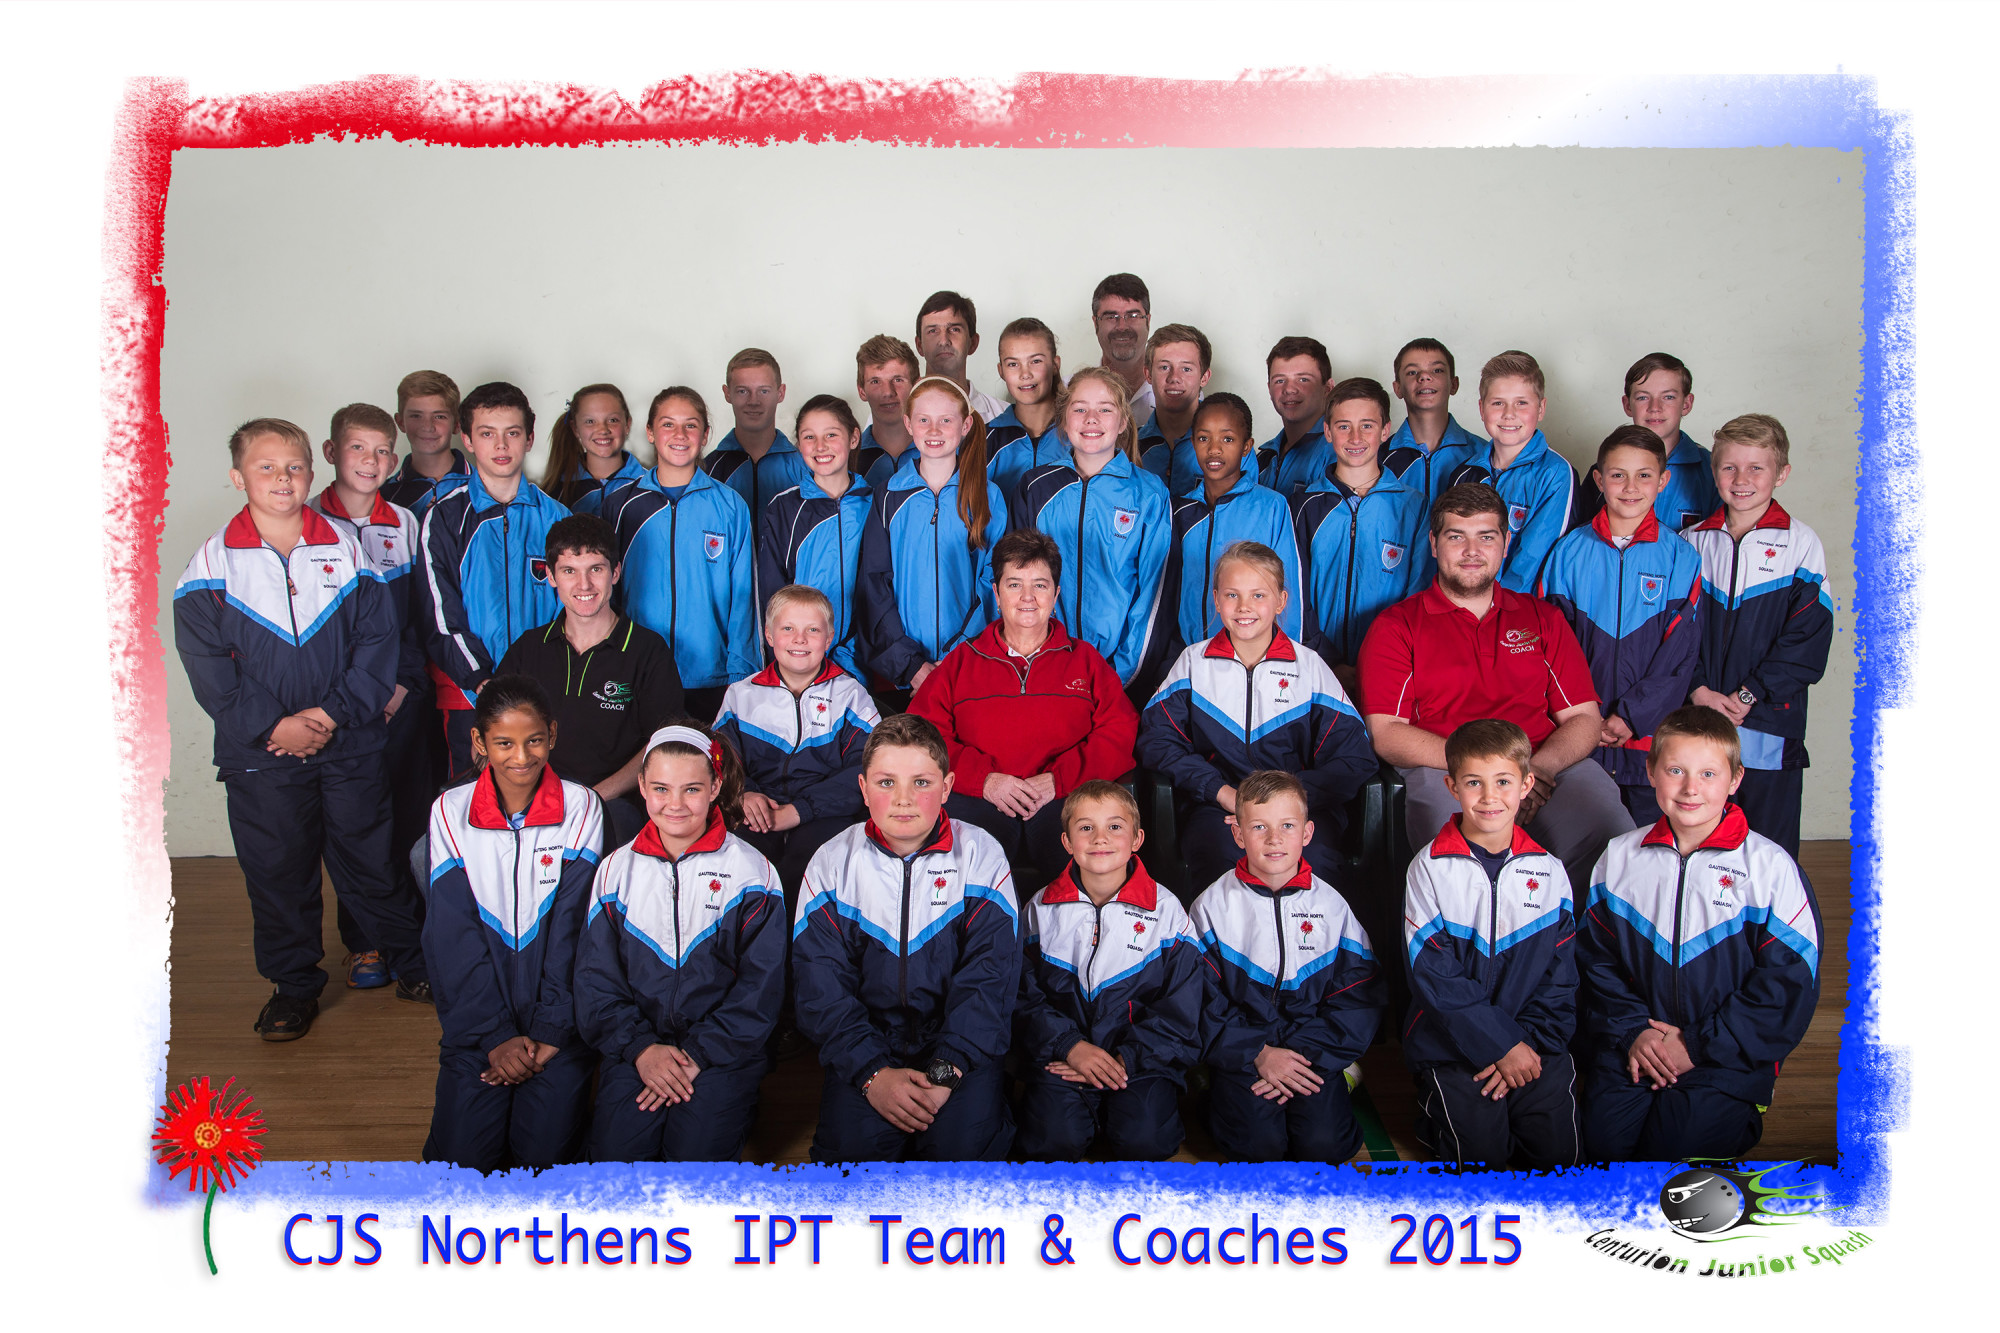 IPT Team & Coaches